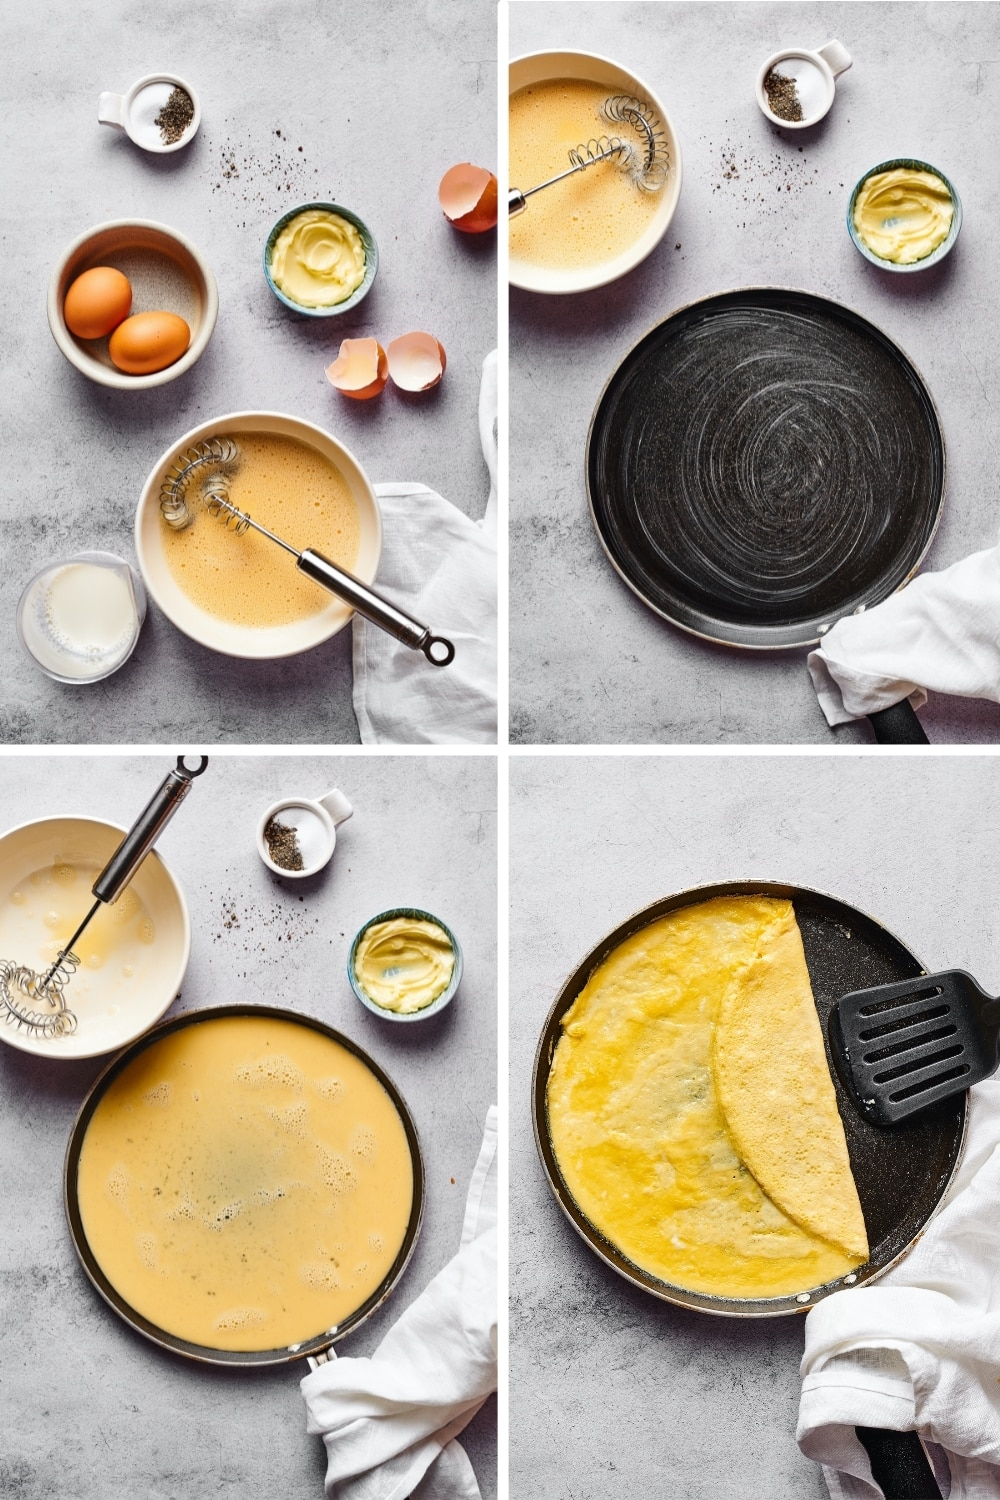 A four way split picture showing the process of making an egg omelette for a homemade McGriddle.